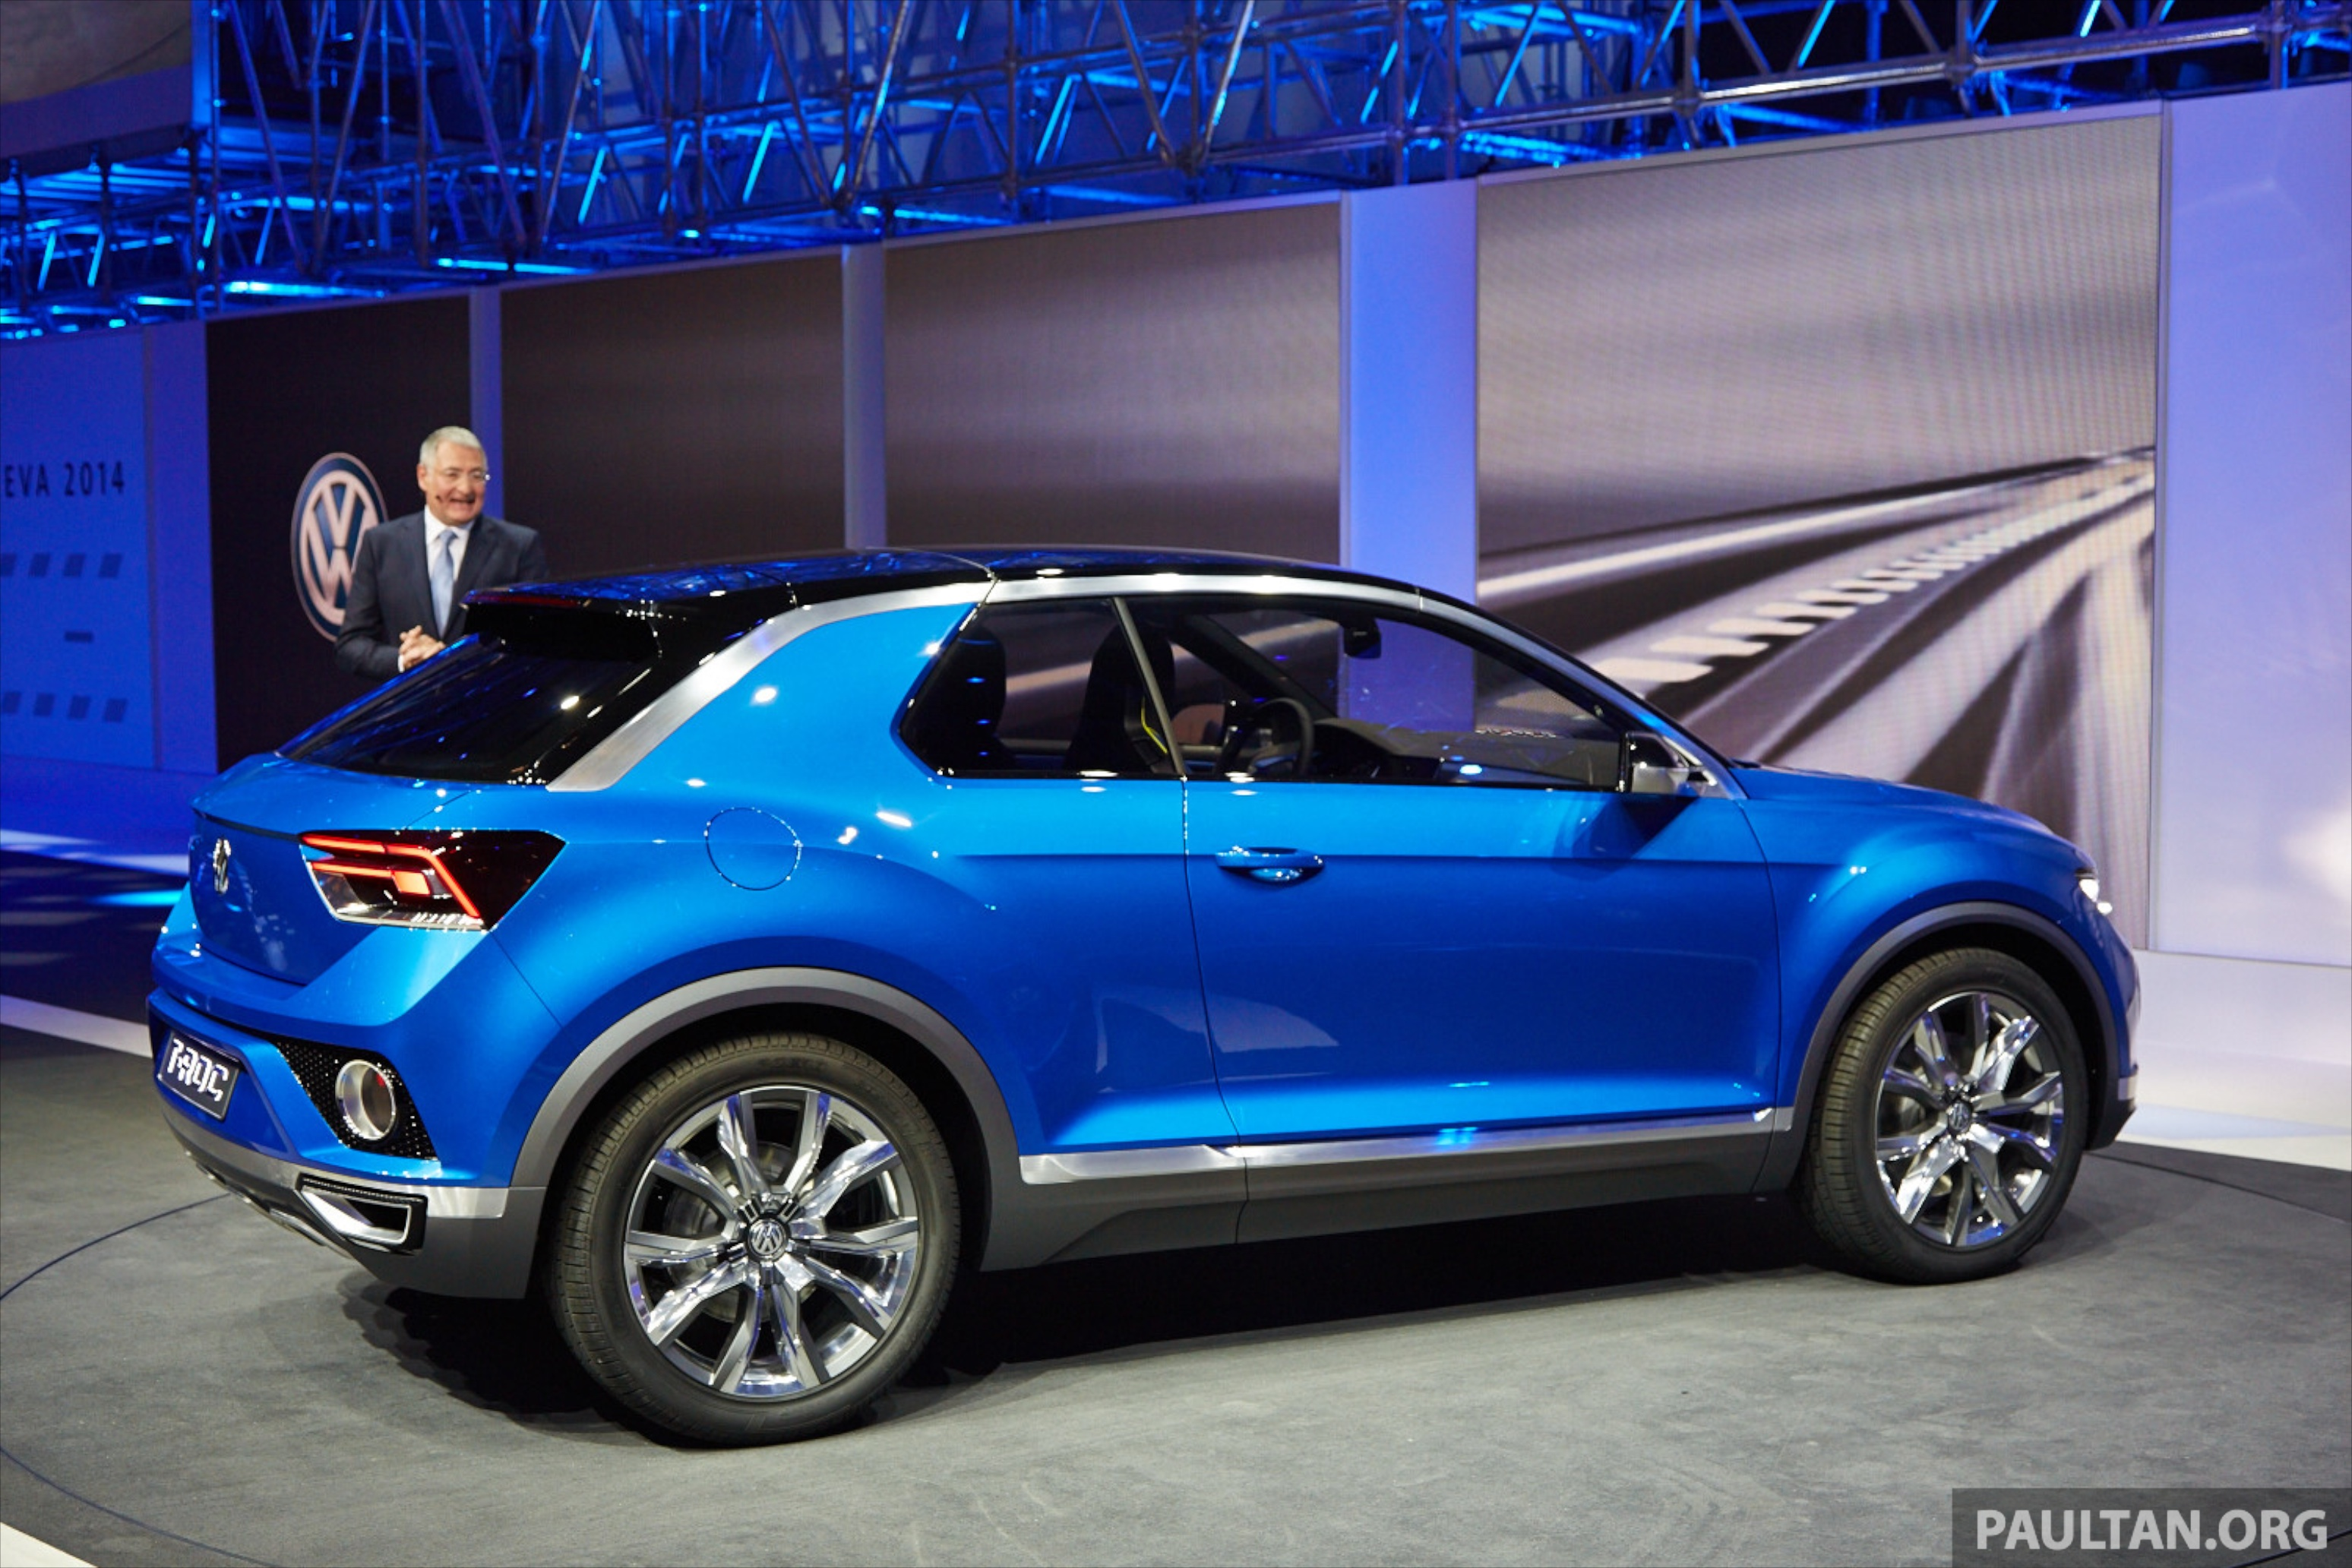 Volkswagen T Roc Concept Previews Upcoming Suv Image 232478